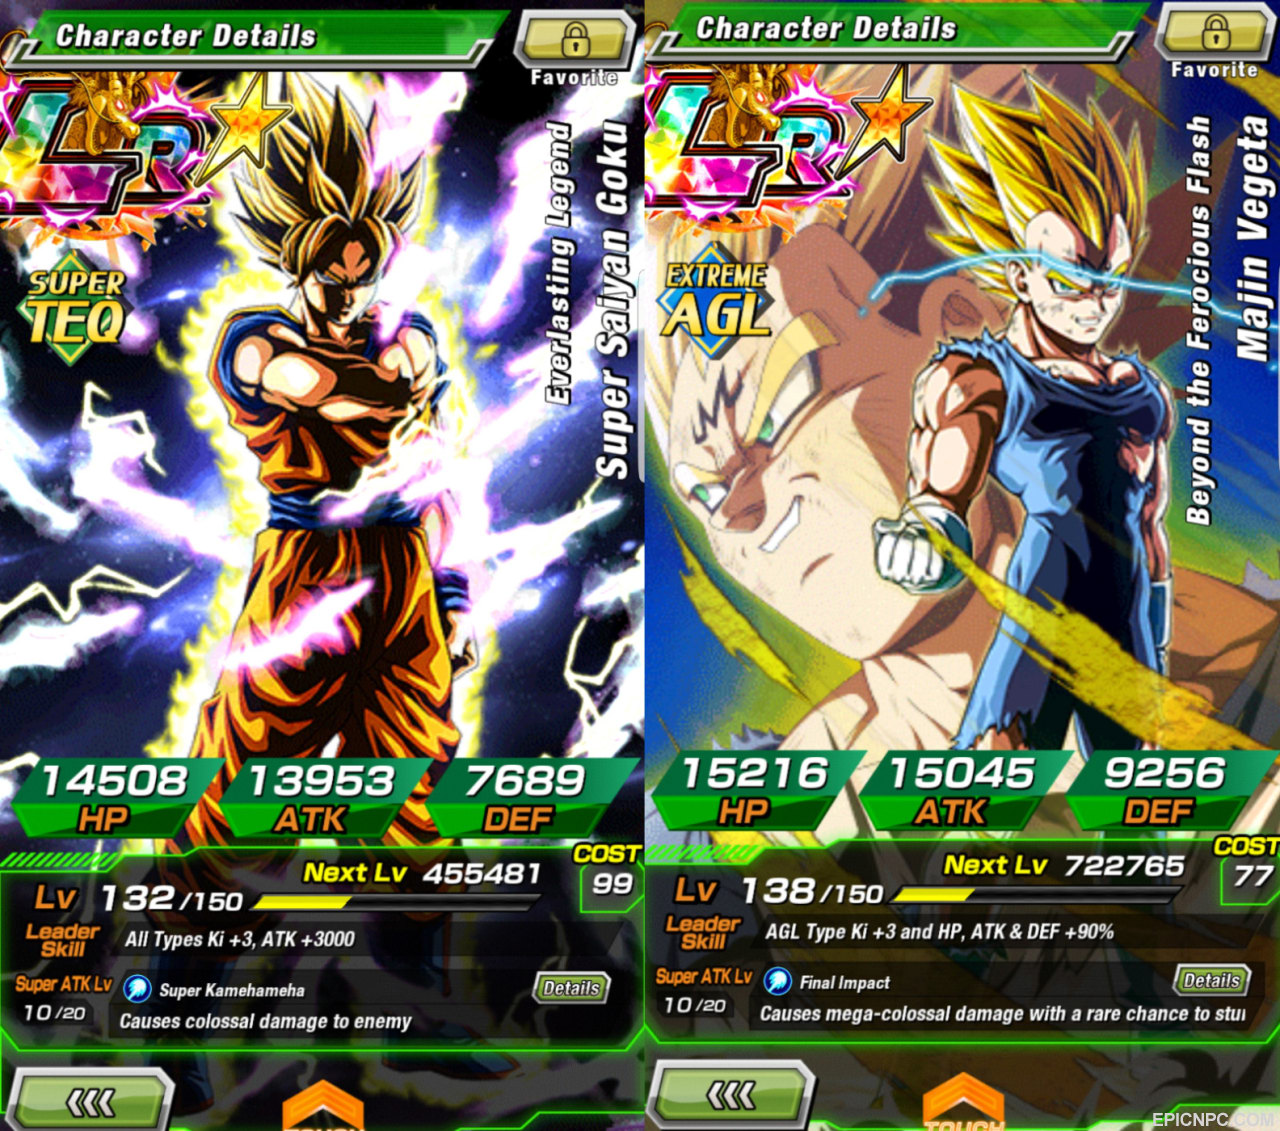 Sold android global dokkan global lr majin lr goku villains thread dokkan global lr majin lr goku villains and godleads ssrs beast acc voltagebd Gallery